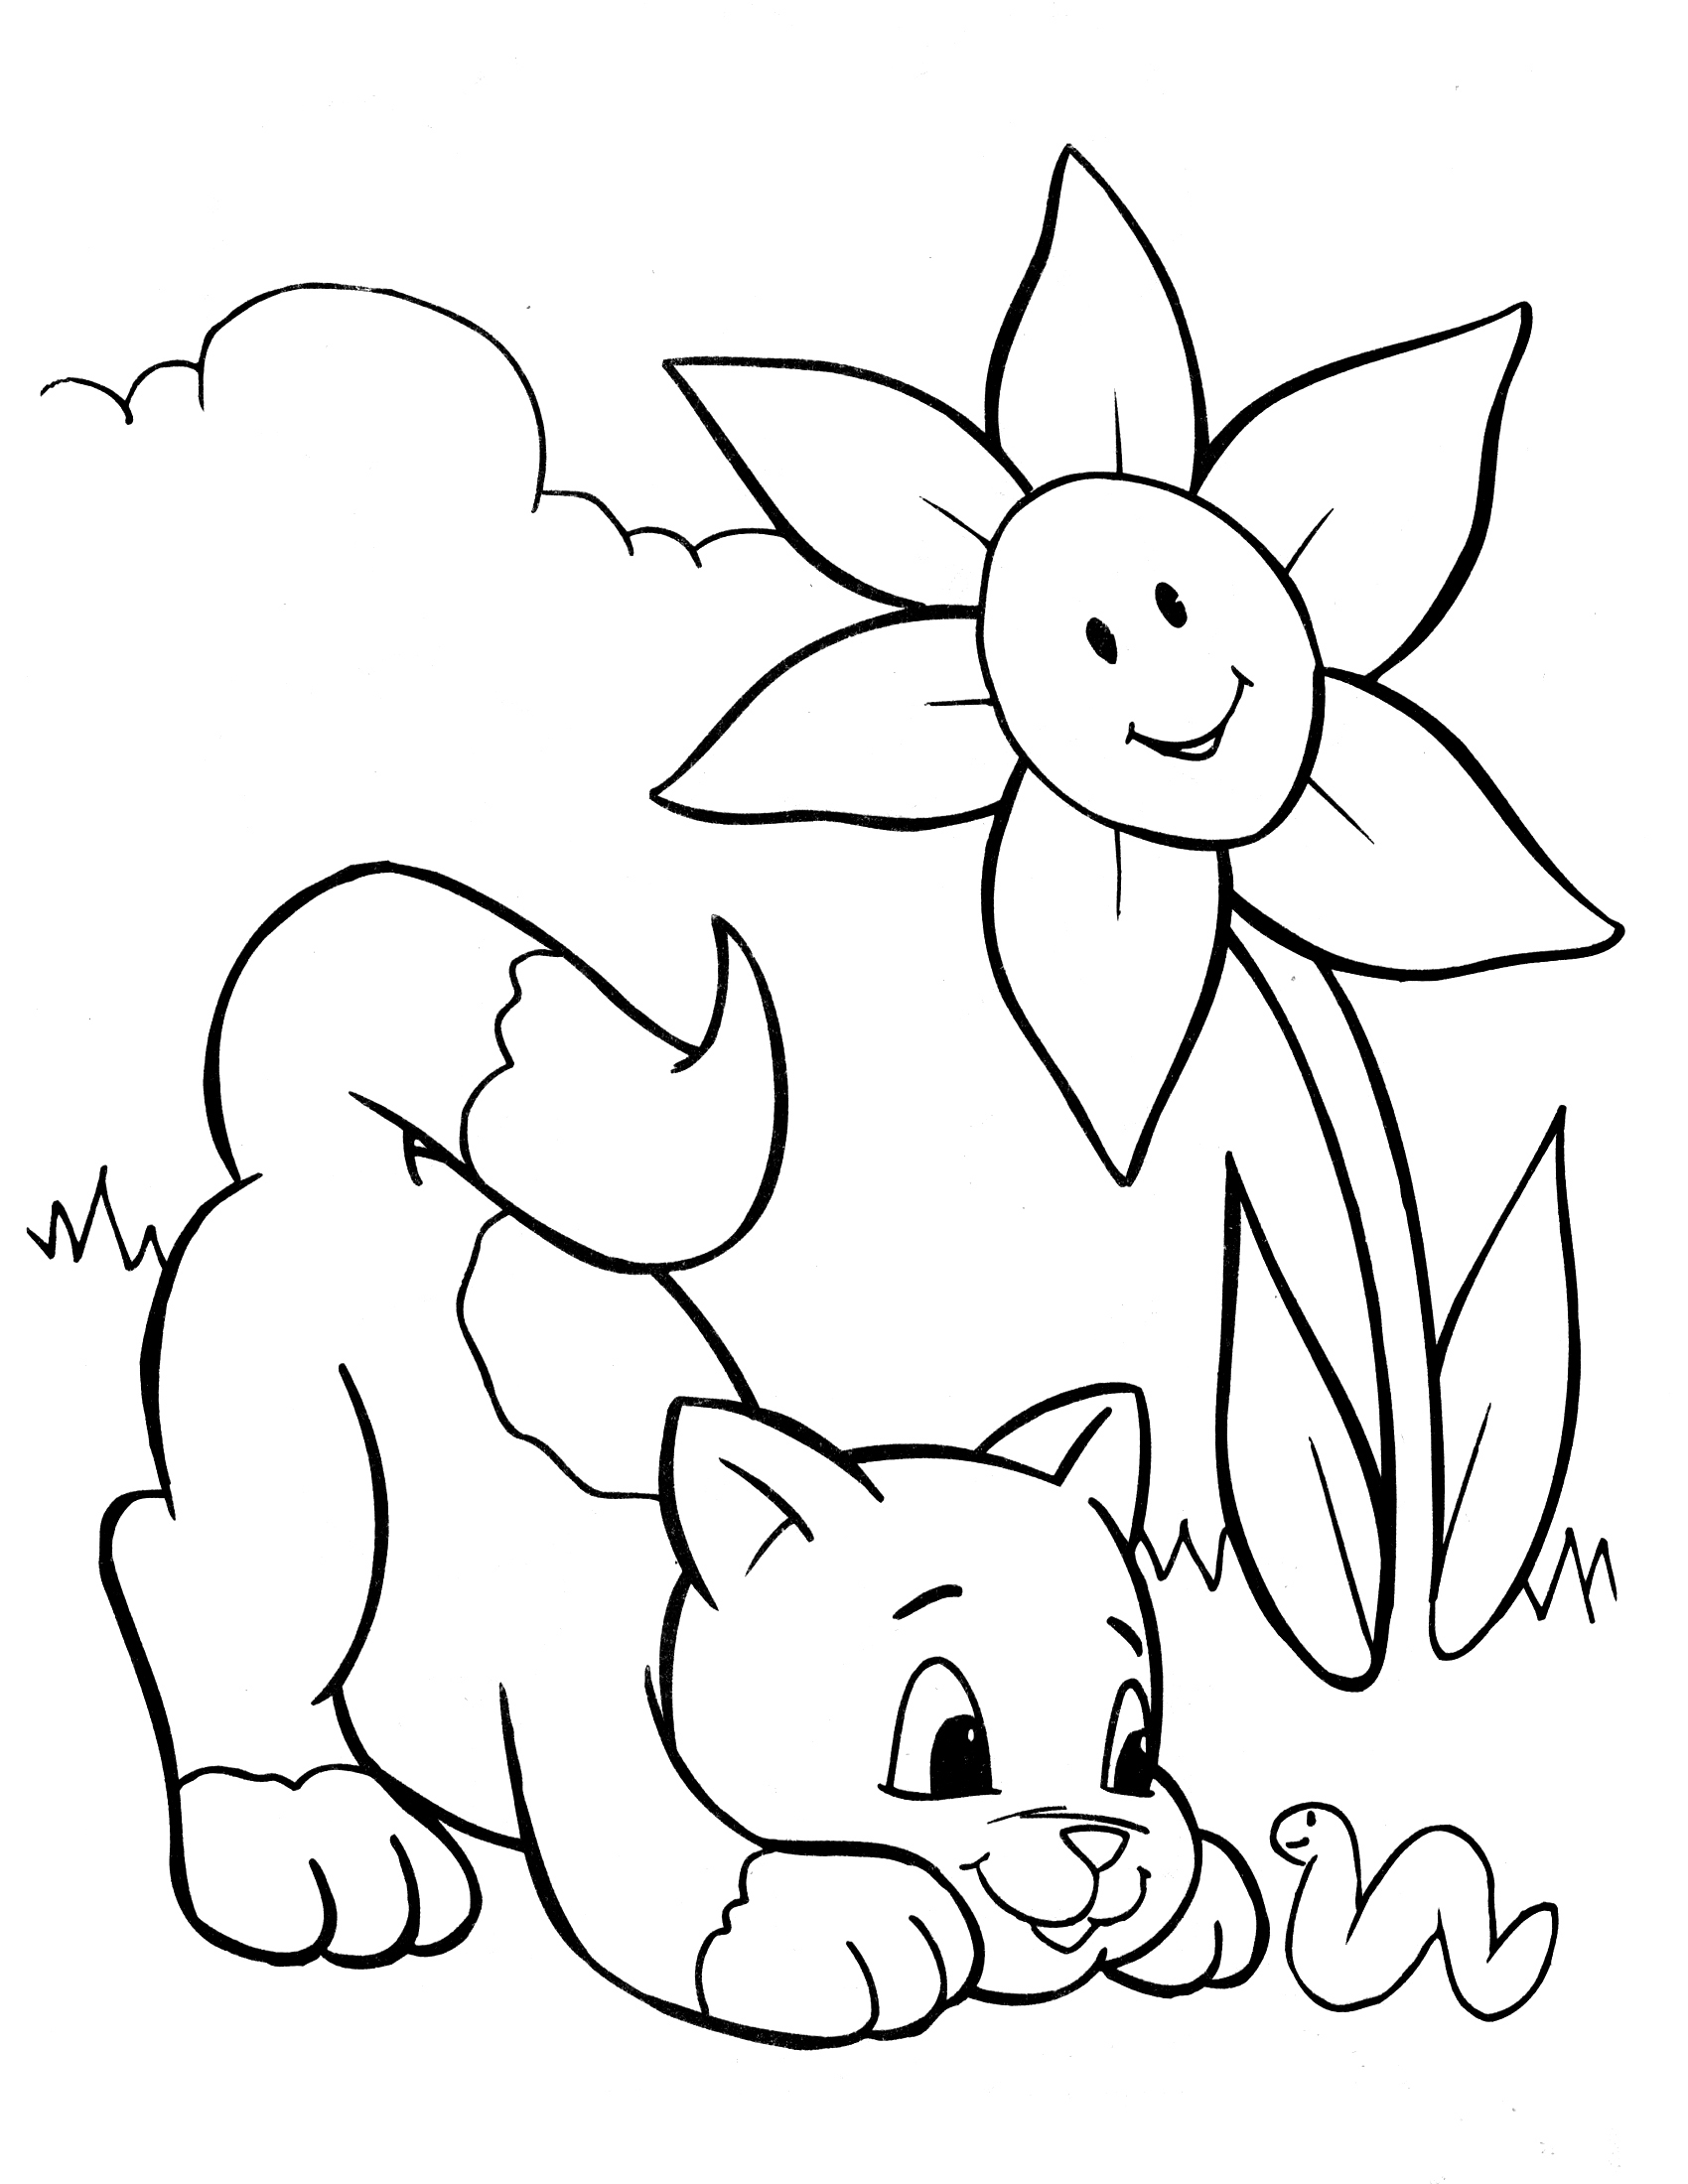 Crayola Animal Coloring Pages at GetDrawings.com | Free for ...